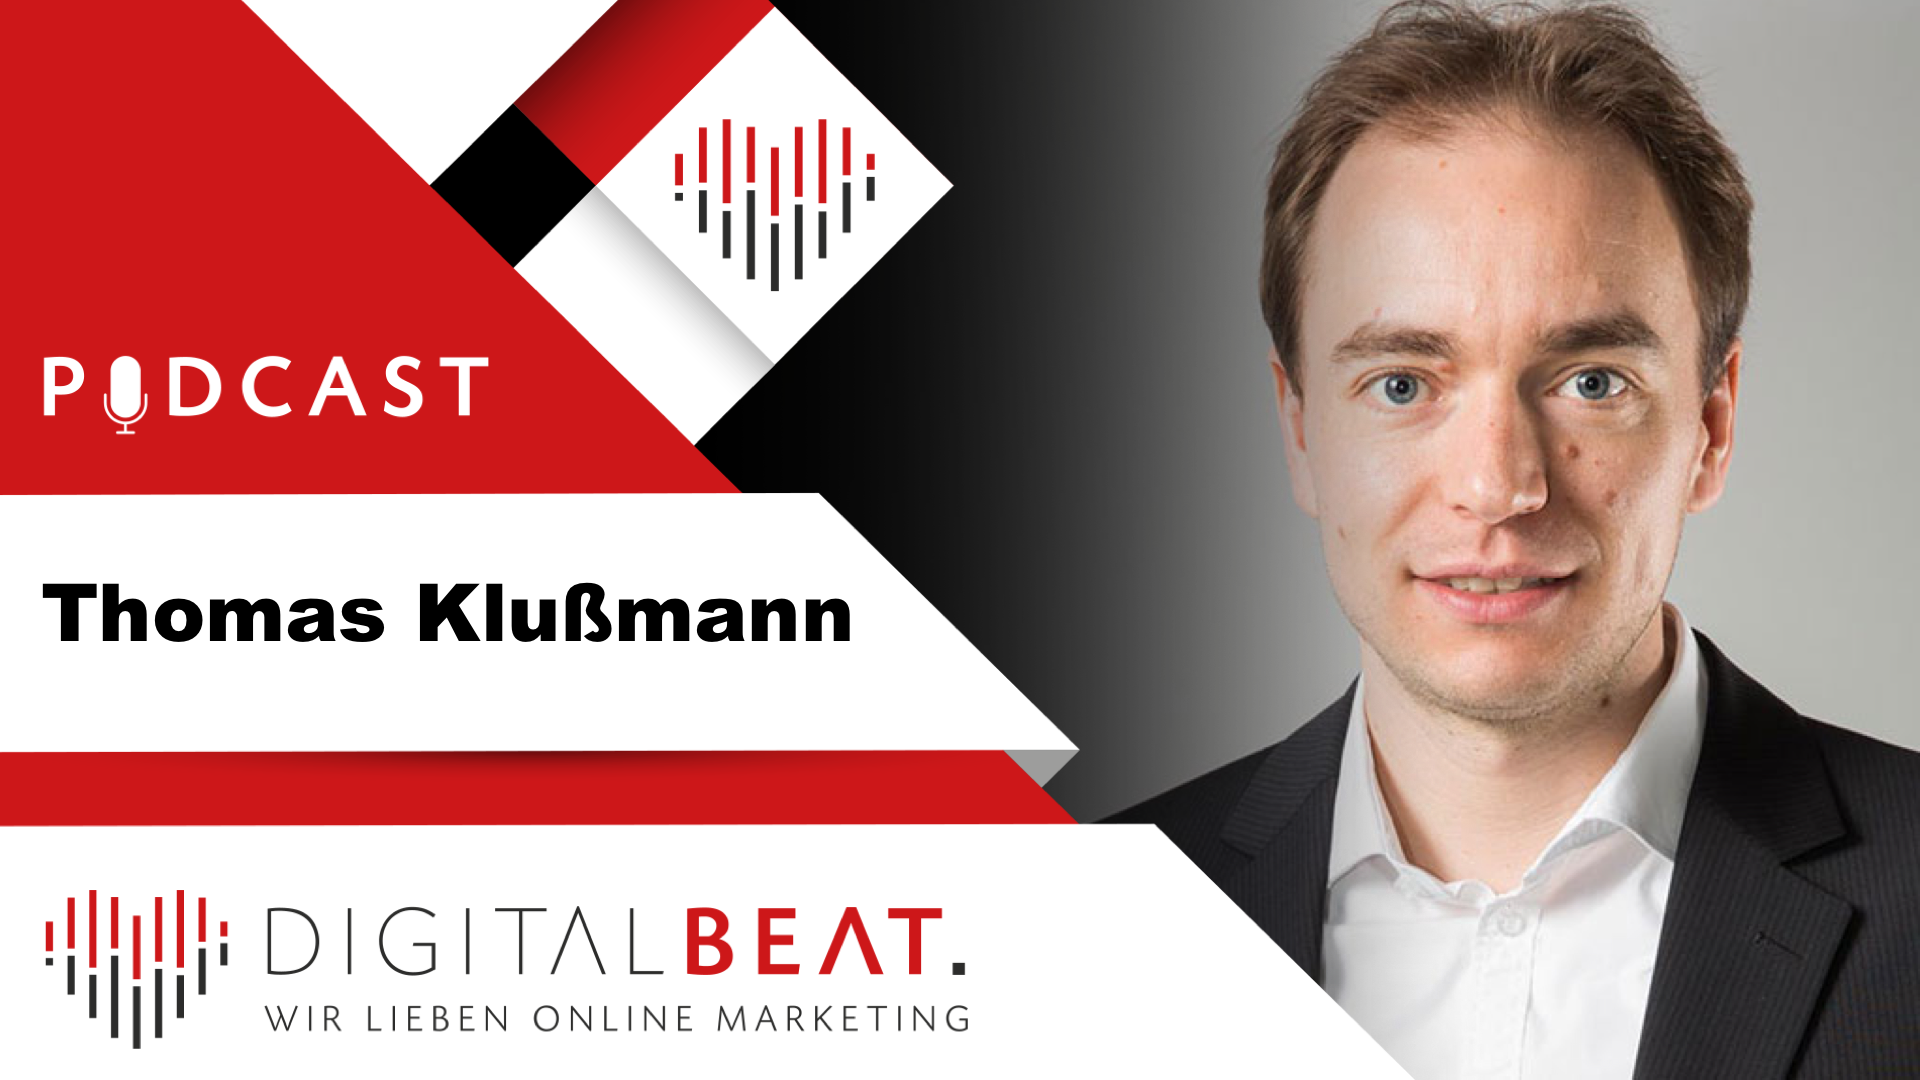 Taschenbuch Digital beat online marketing podcast